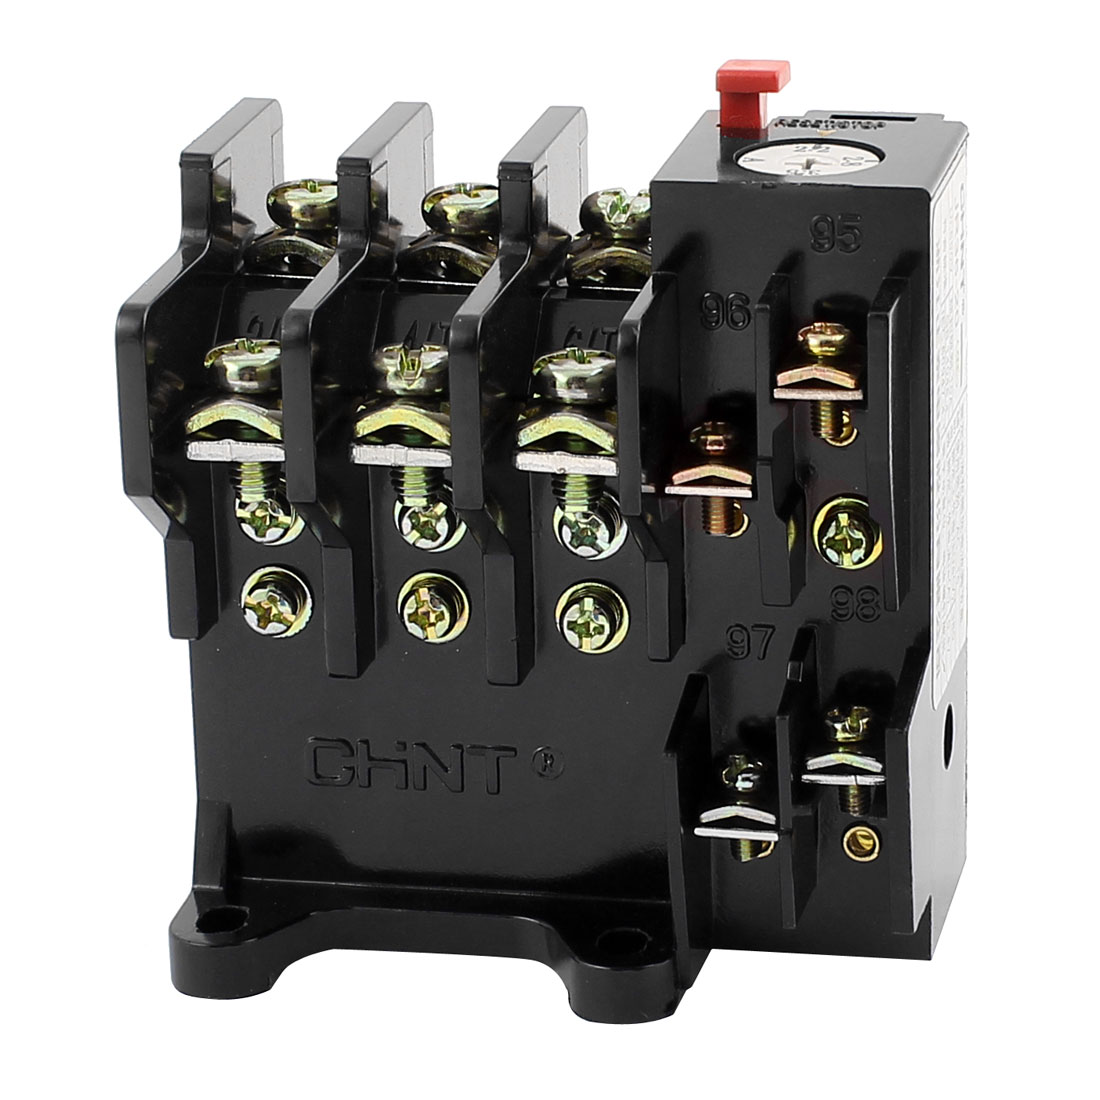 JR36-20 2.2-3.5A 3 Phase 1 NO 1 NC Motor Protector Electric Thermal Overload Relay